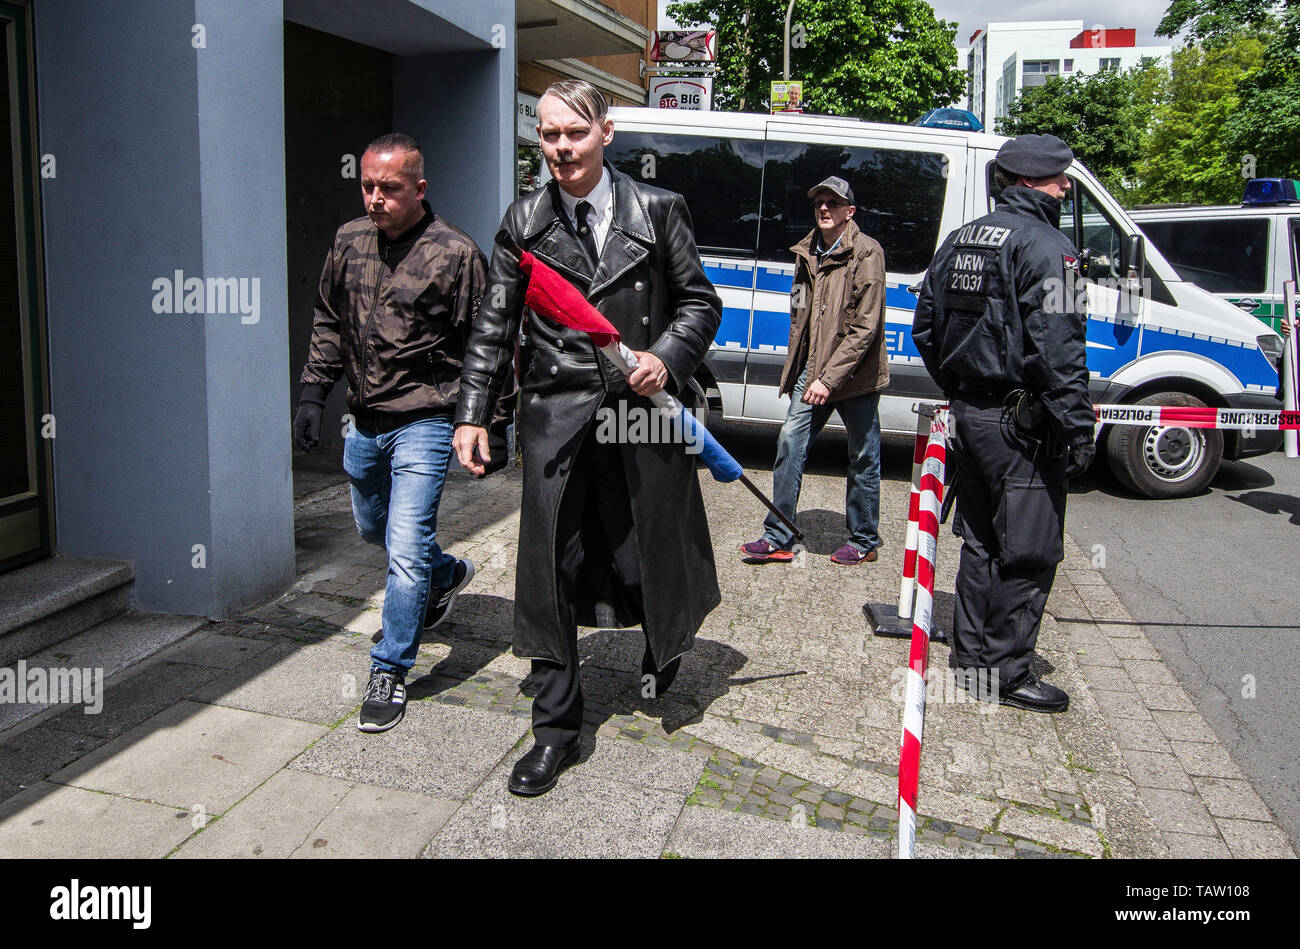 Dortmund, Nordrhein Westfalen, Germany. 25th May, 2019. A neonazi from The Netherlands has fashioned himself into the appearance of Adolph Hitler. On his tie is a pin of the Edelweiss flower, which was used by the SS and is still in use by the Gebirgsjaeger today. Prior to the European Elections, the neonazi party Die Rechte (The Right) organized a rally in the German city of Dortmund to promote their candidate, the incarcerated Holocaust denier Ursula Haverbeck. The demonstration and march were organized by prominent local political figure and neonazi activist Michael Brueck (Michael Brück Stock Photo